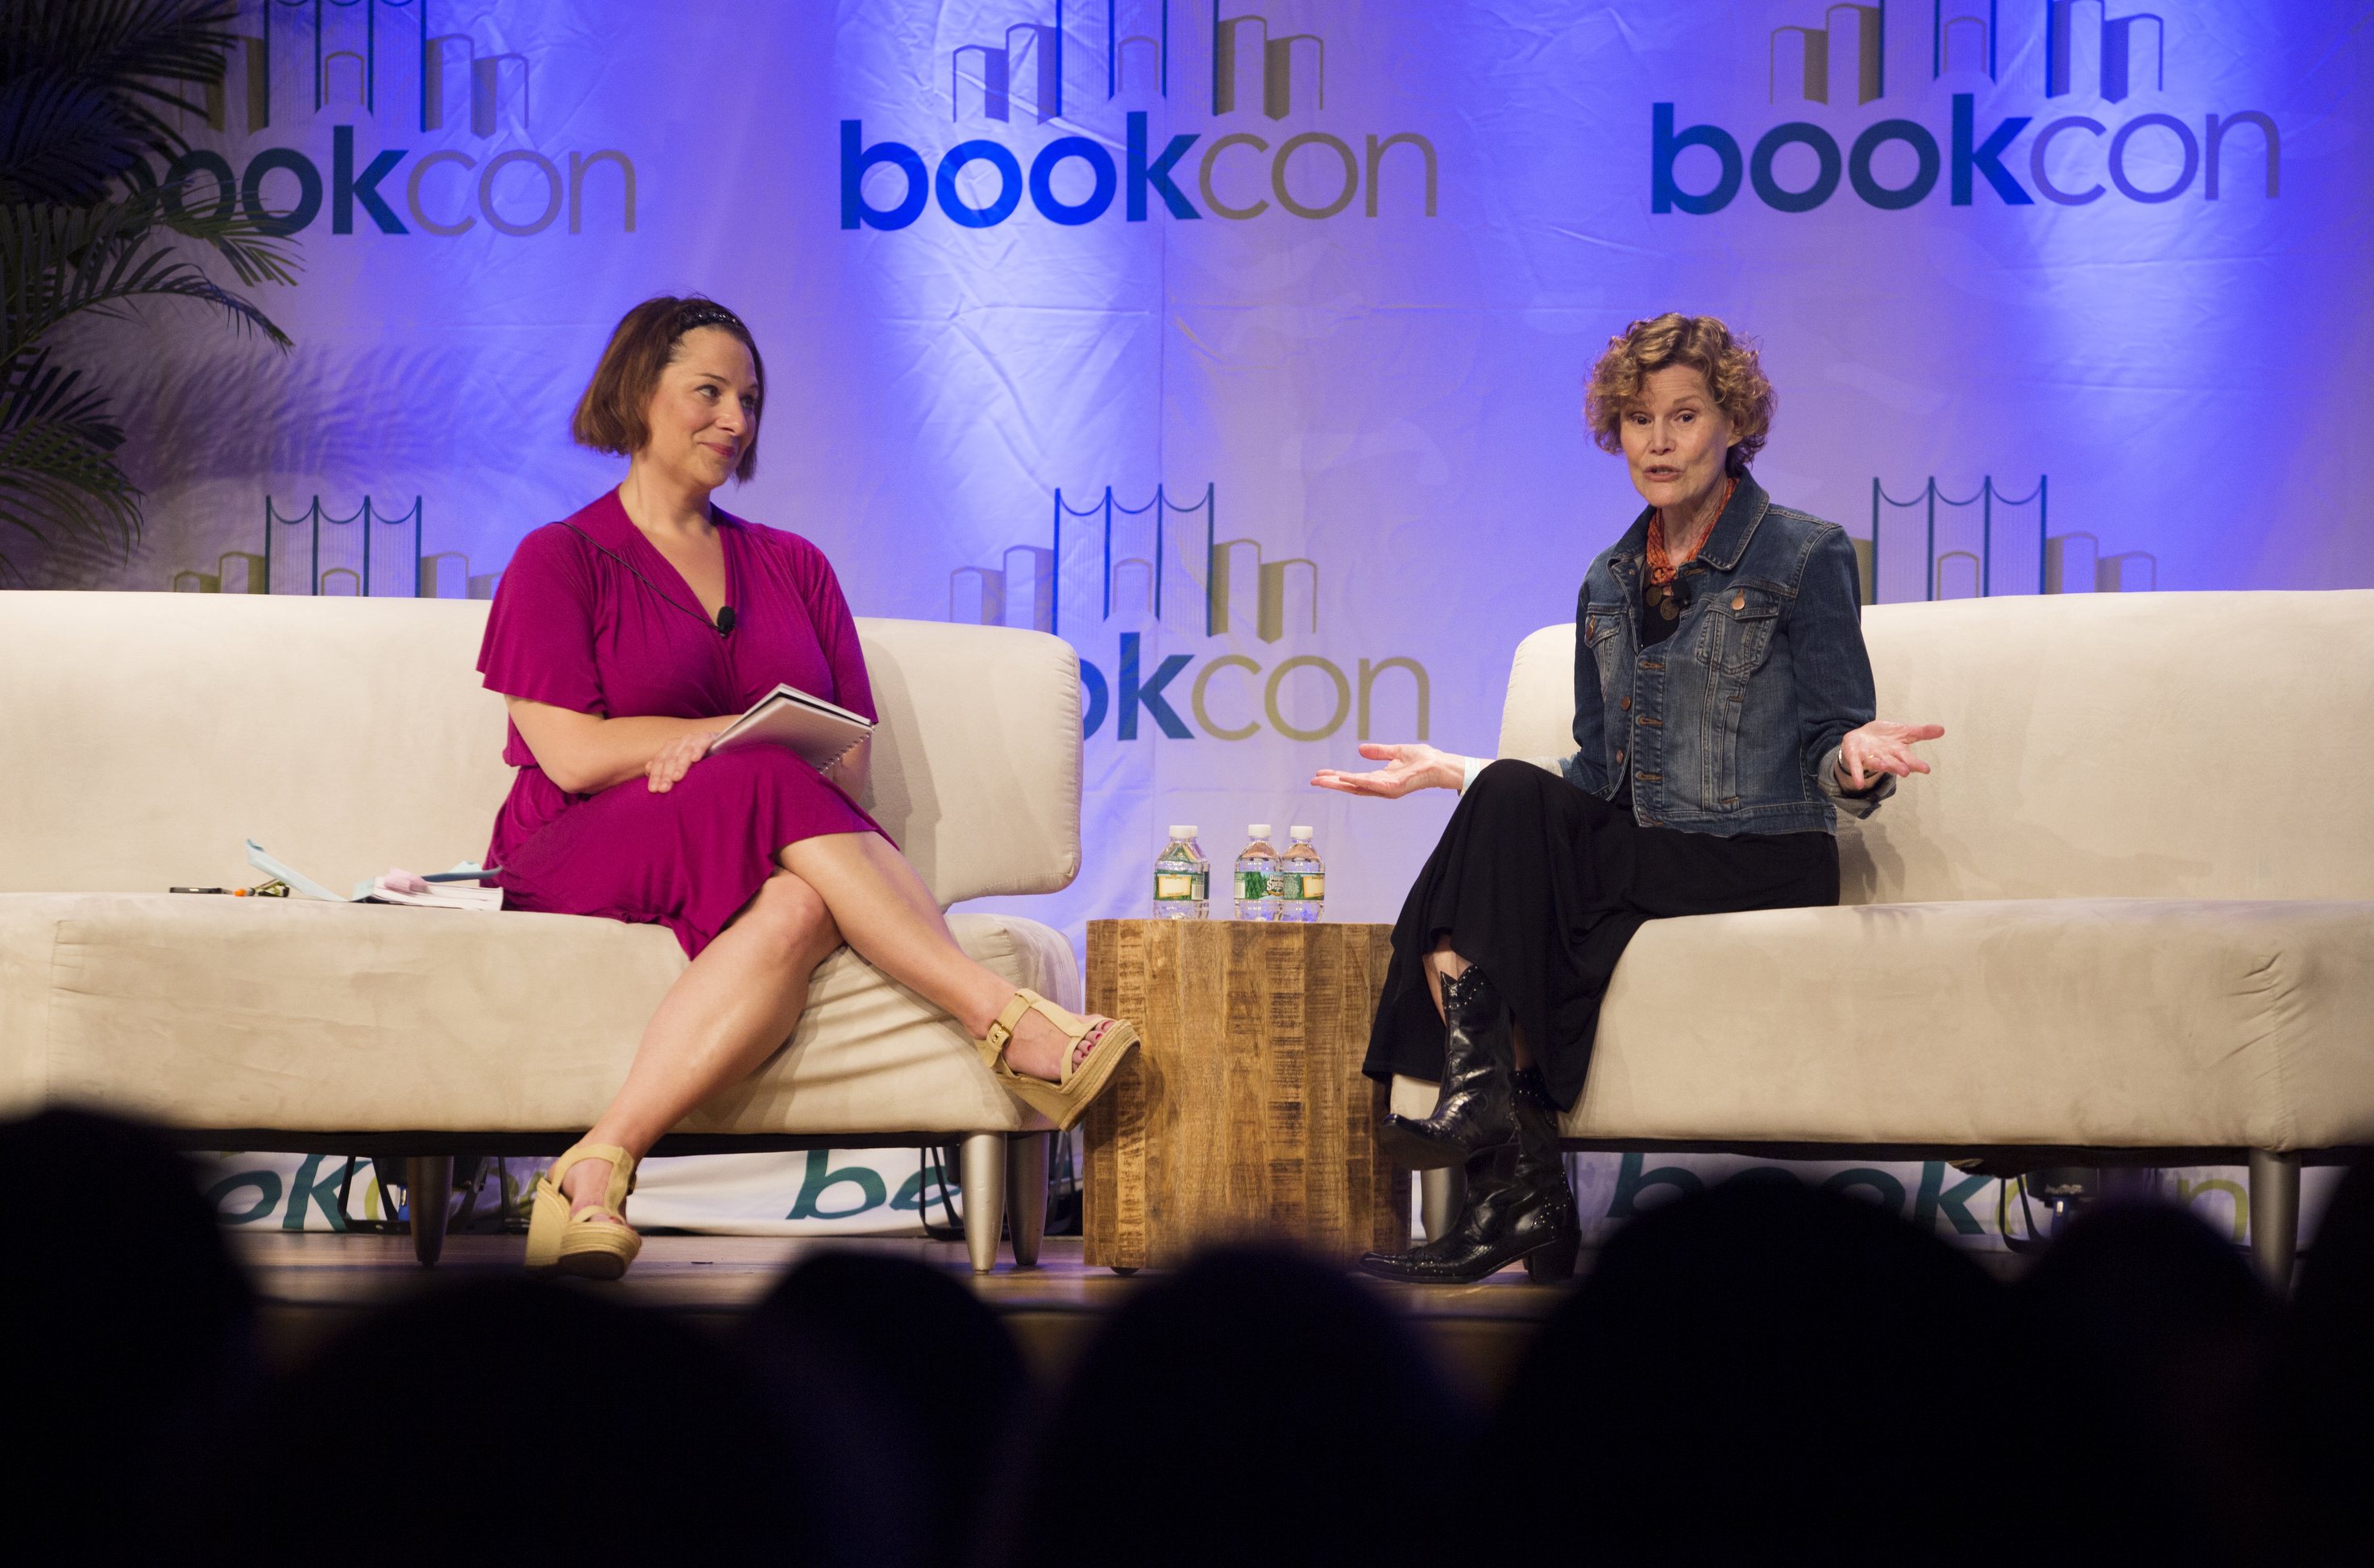 Jennifer Weiner, an author, left, interviews Judy Blume at BookCon at the Javits Centre in New York, May 31, 2015. Blume is promoting her new novel, 'In the Unlikely Event,' her first for adults since 1998. — (Kirsten Luce/The New York Times)